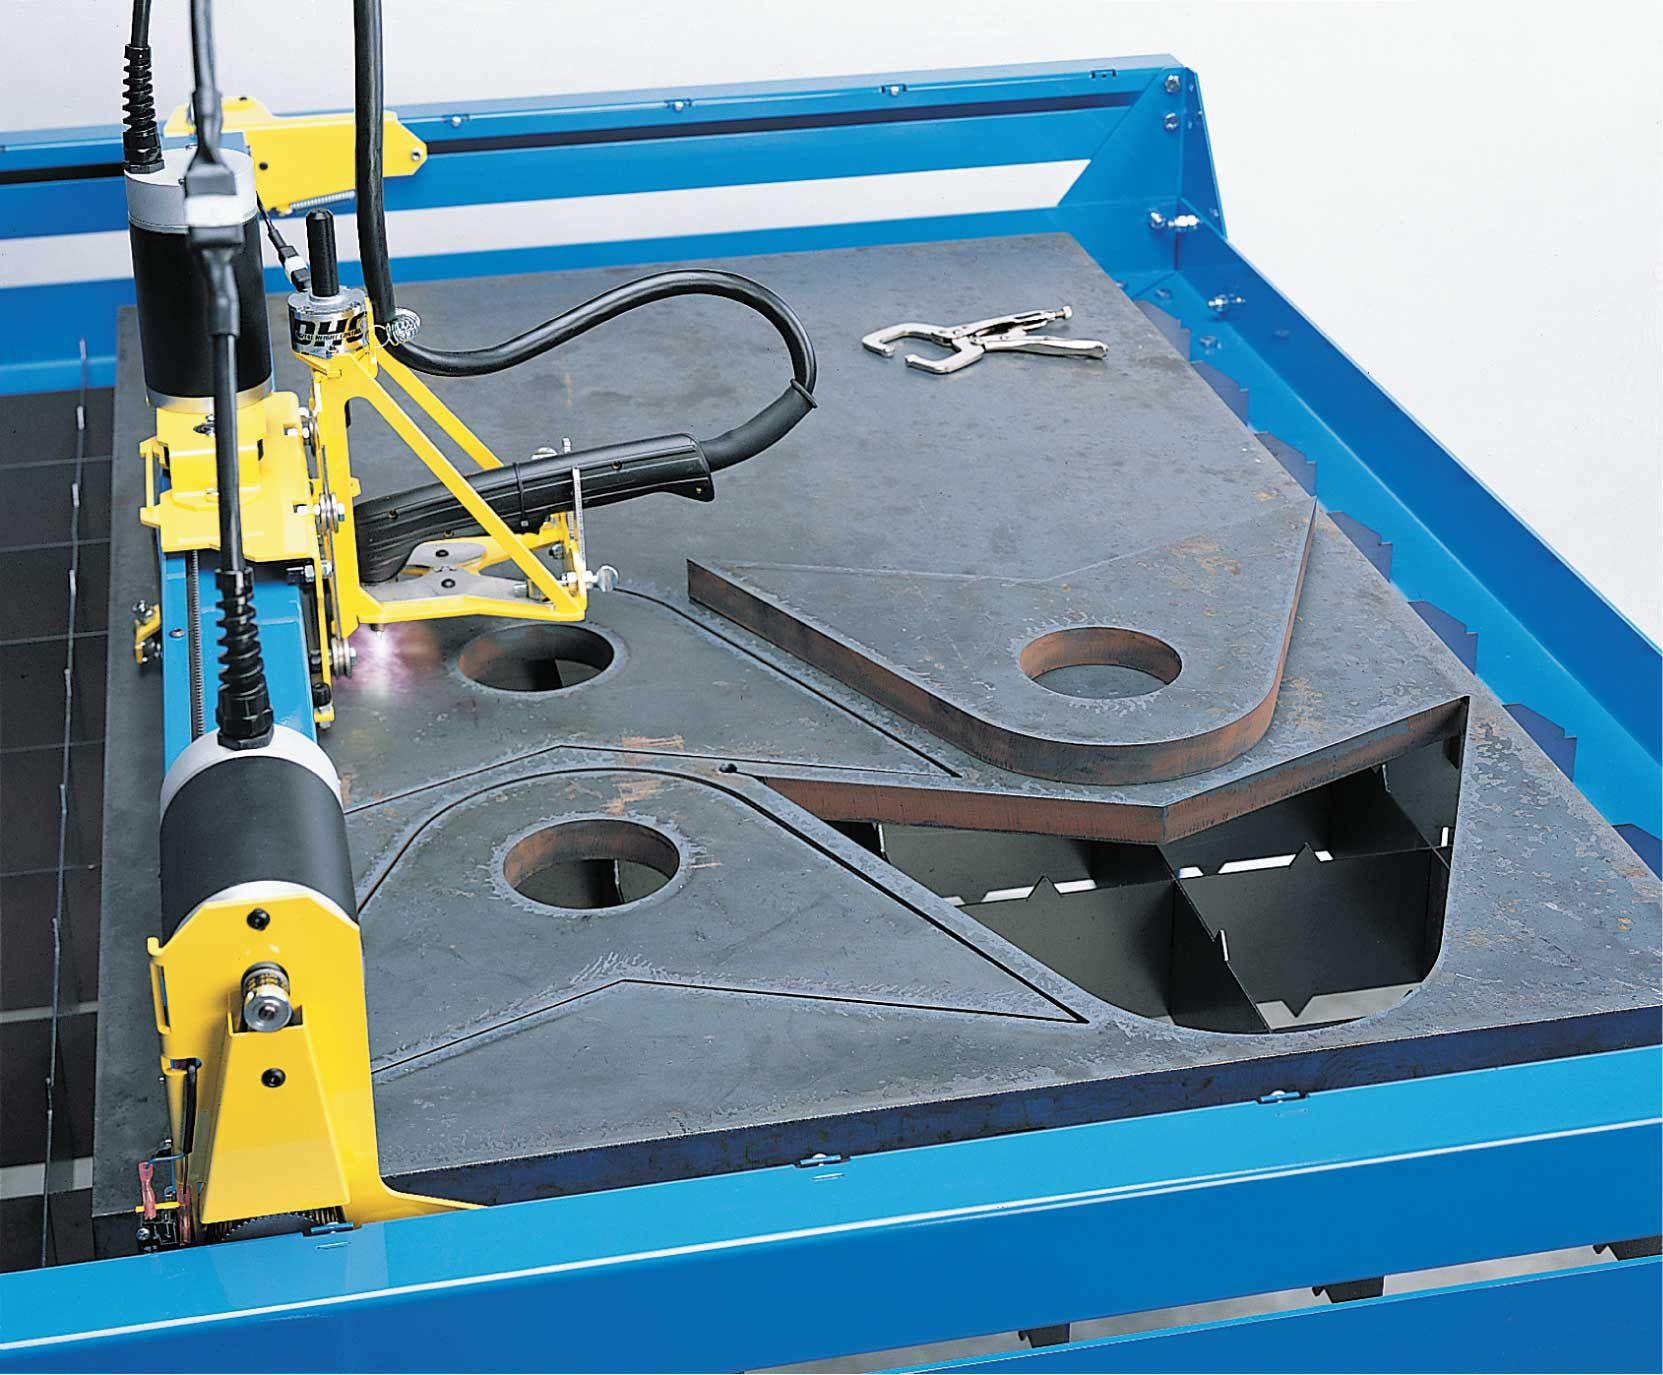 how much does a plasmacam machine cost